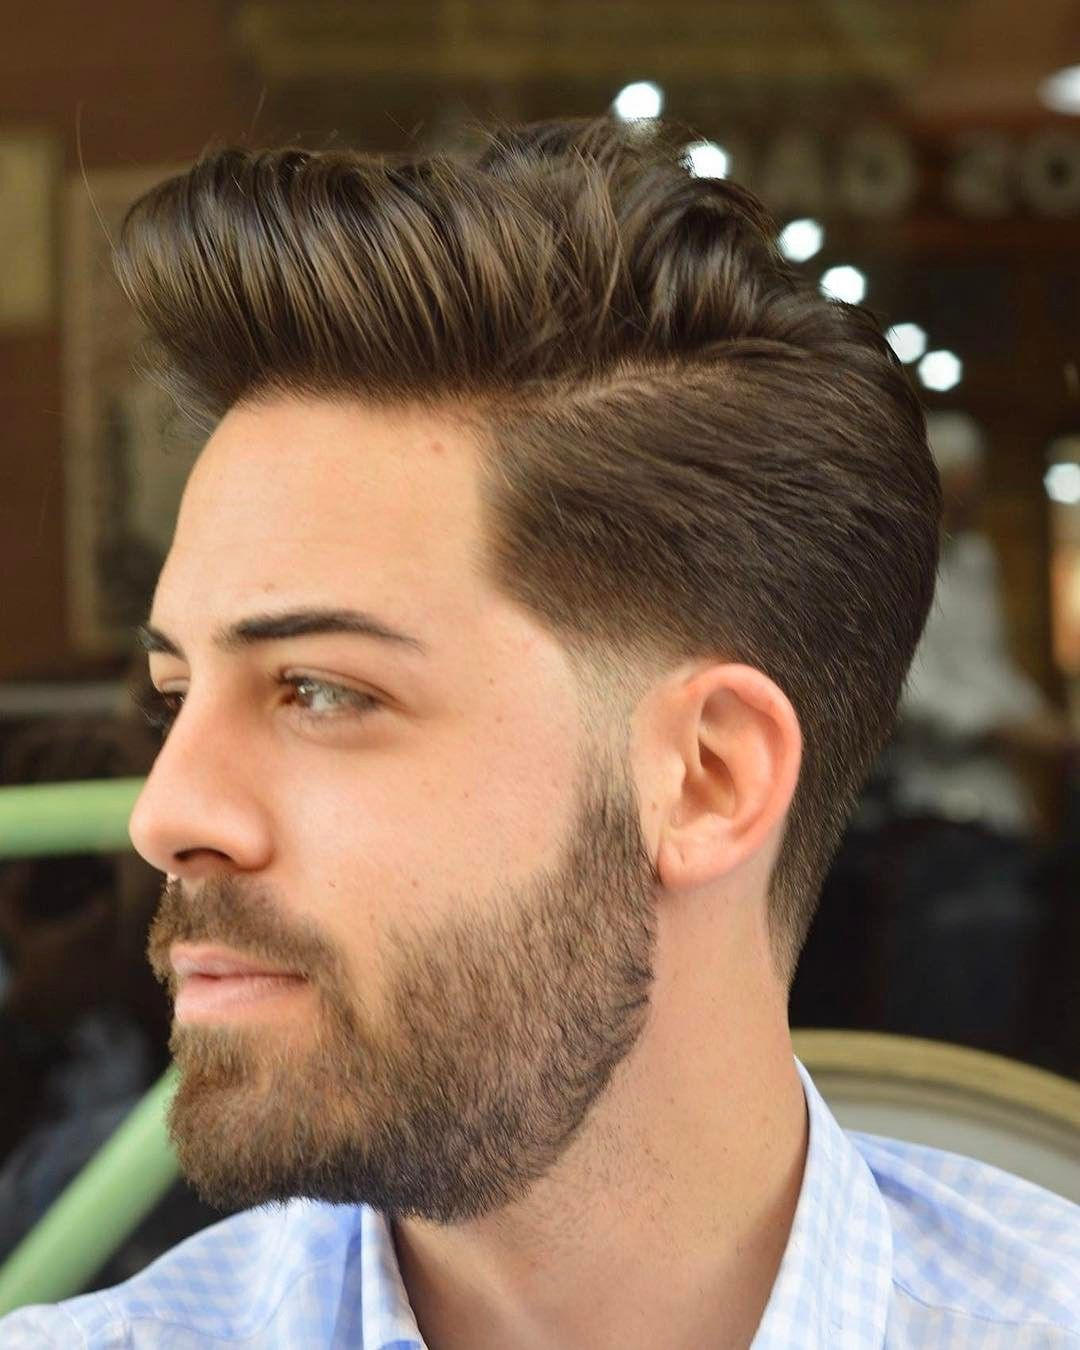 Classic Hairstyles For Men Hairstyles For Men  Latest Hairstyles For Men 2017  Pinterest